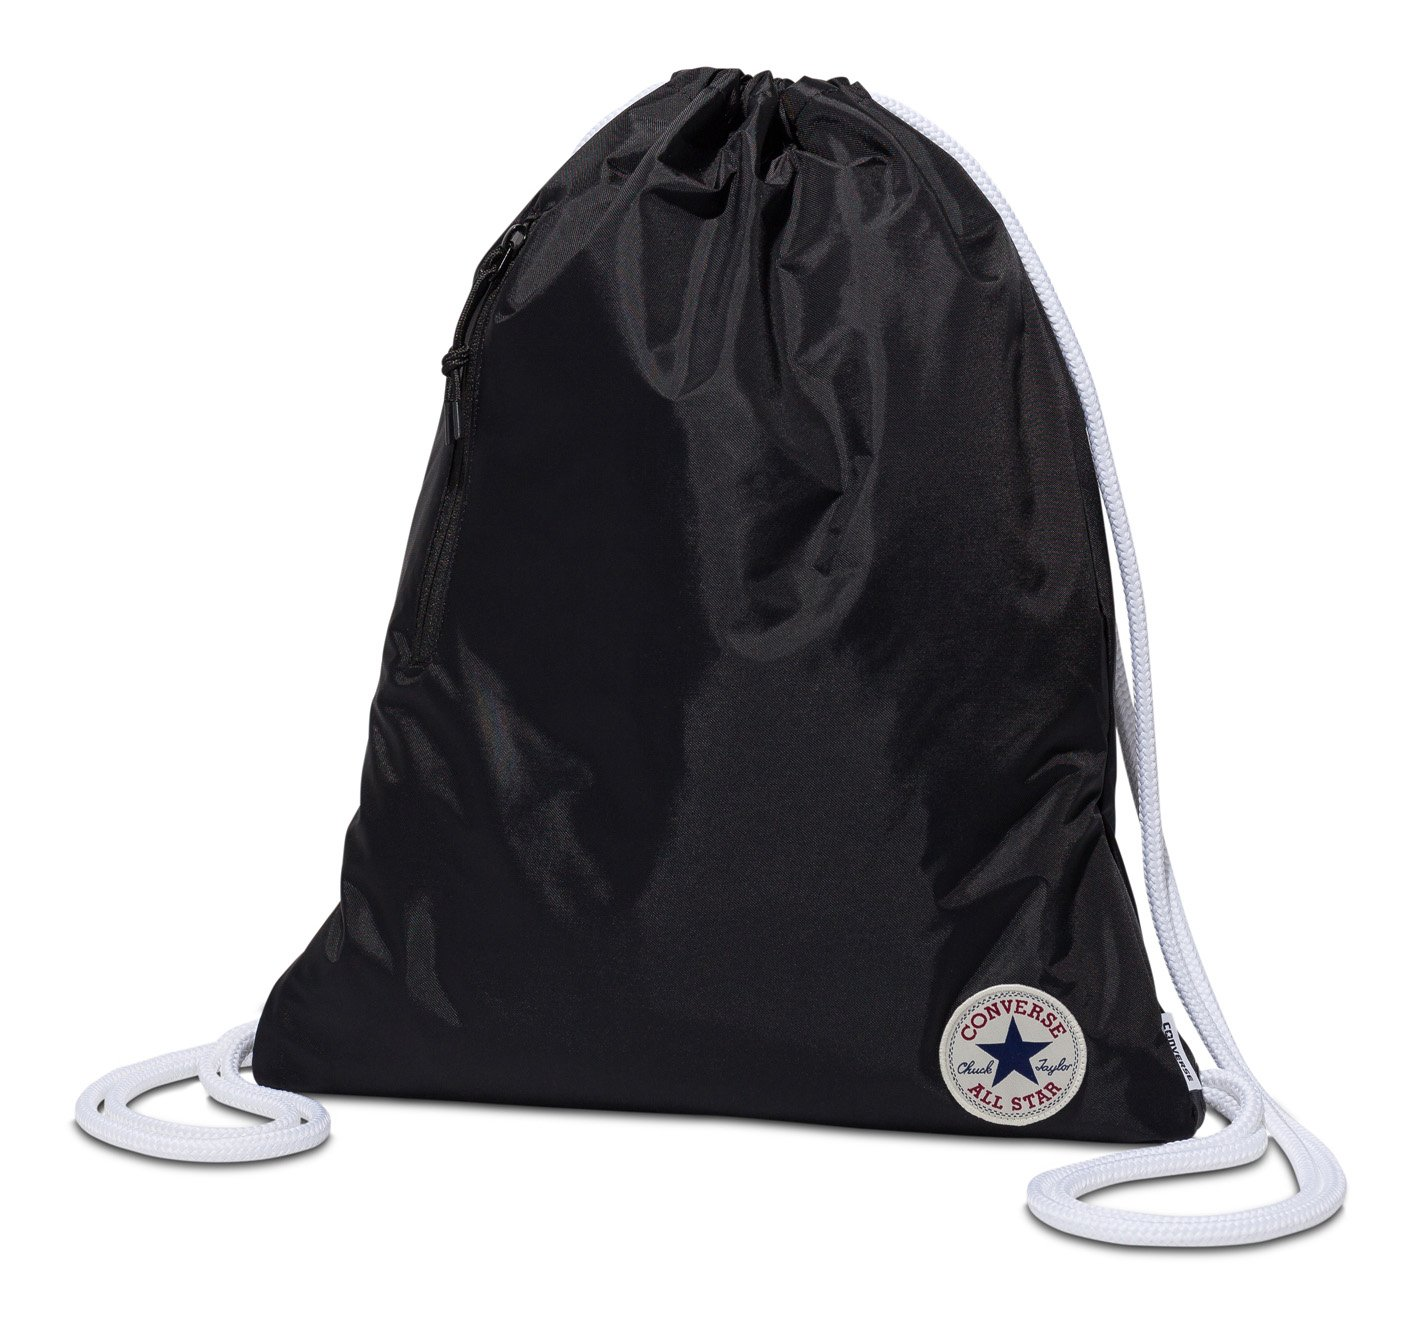 febd30ec2a Converse All Star Core Cinch Gymsack Gymbag Shoudler Bag  Amazon.co.uk   Luggage